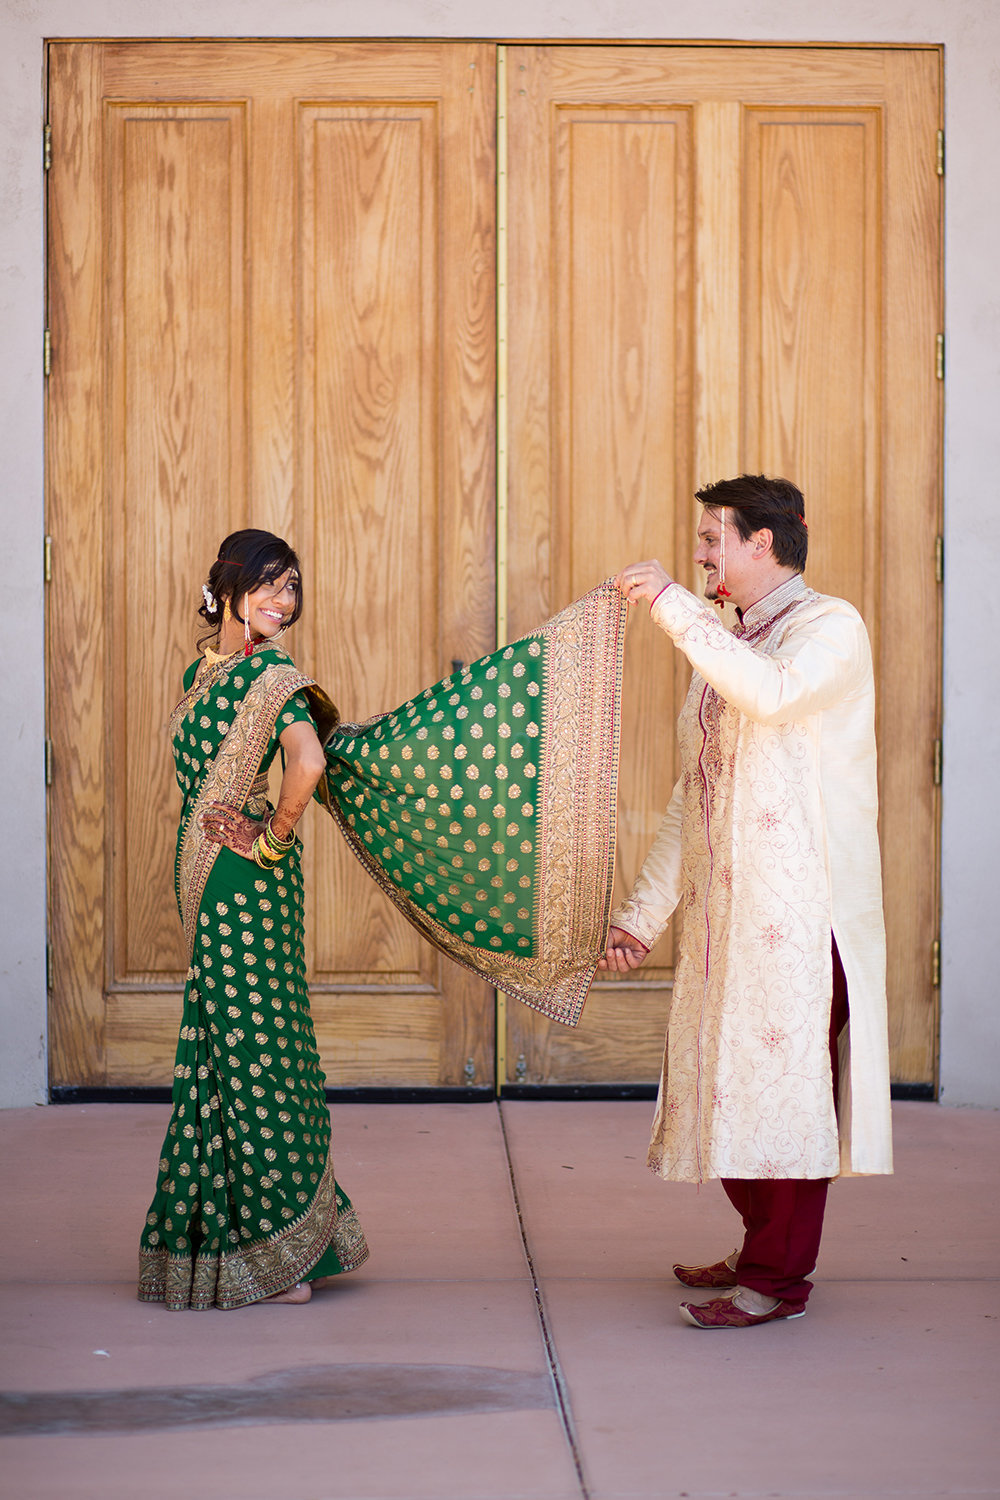 Fun pose for a an Indian bride in a Sari